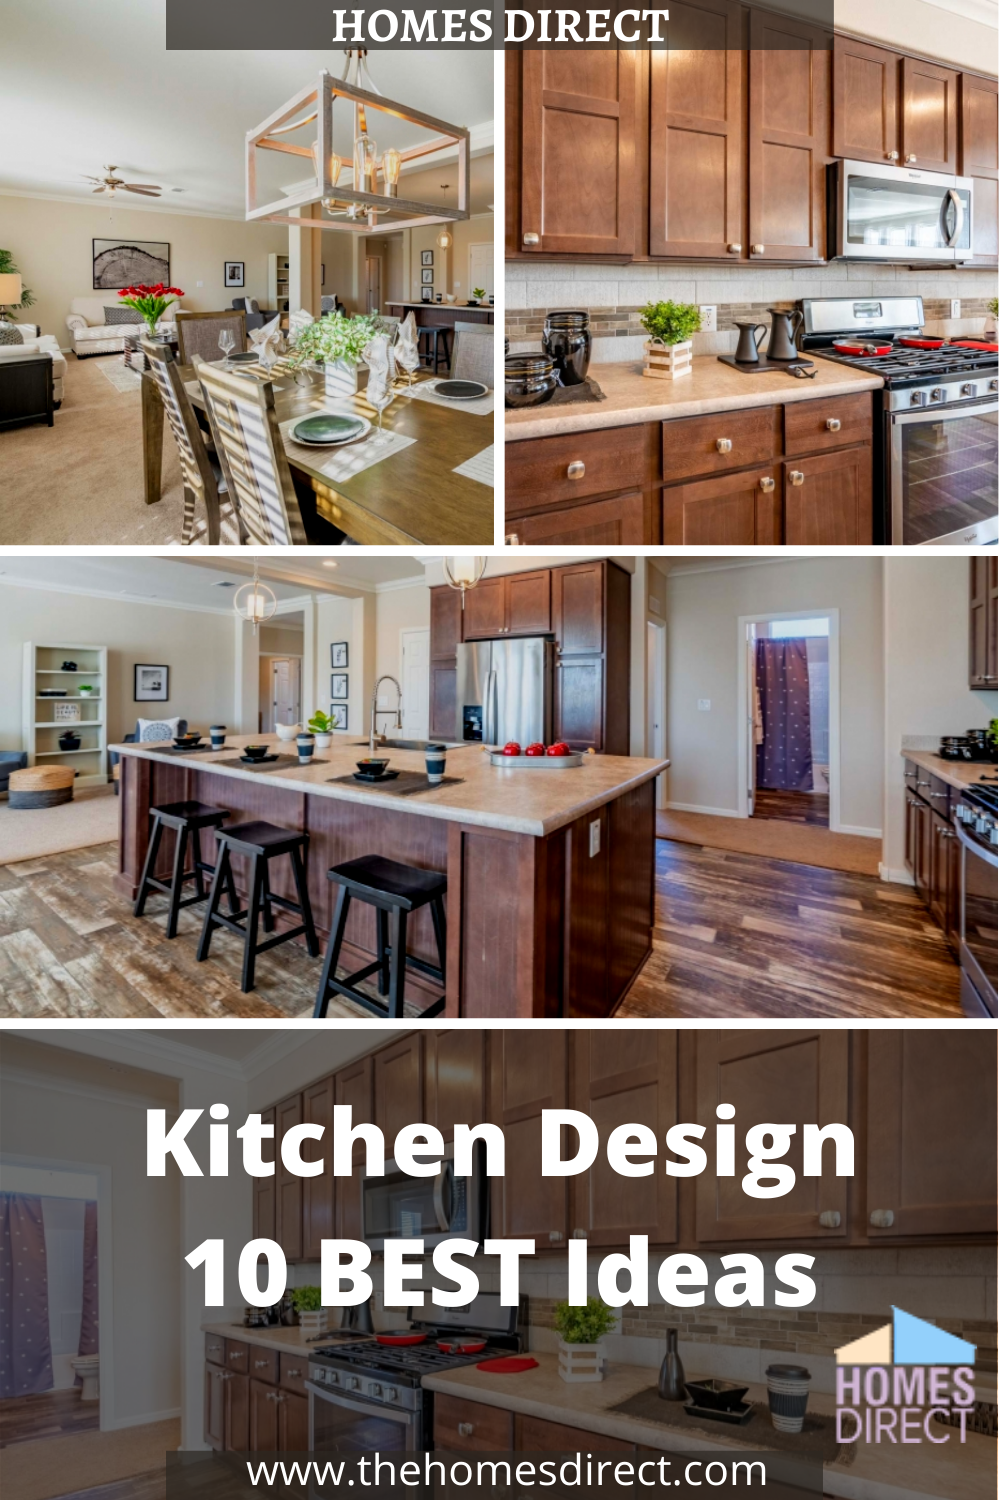 Hd4068b In 2020 Home Kitchens Direct Cool Kitchens